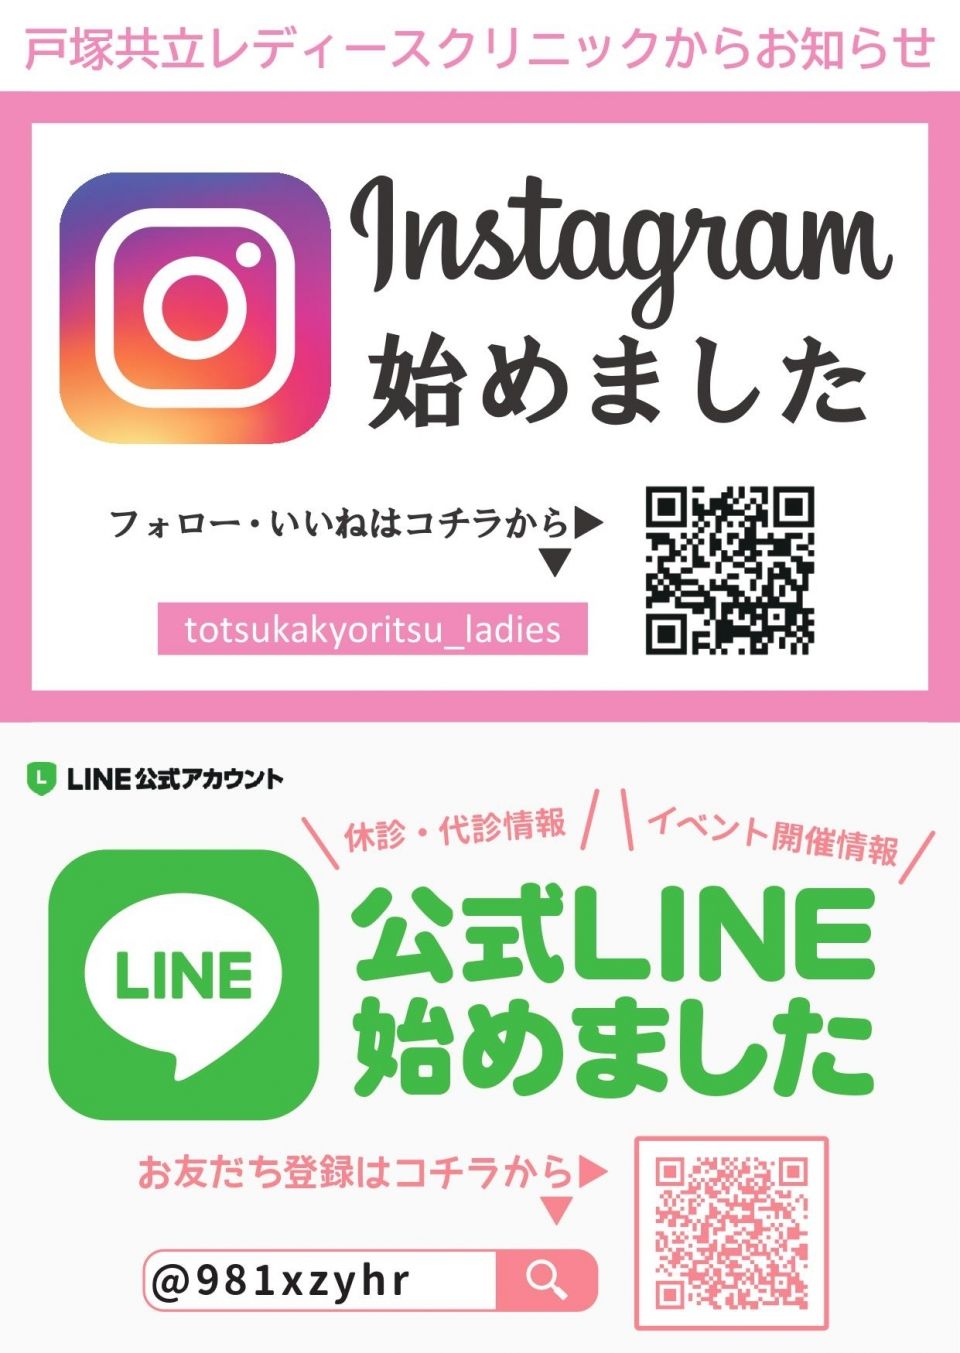 <strong>公式LINE&Instagram開設のお知らせ</strong>